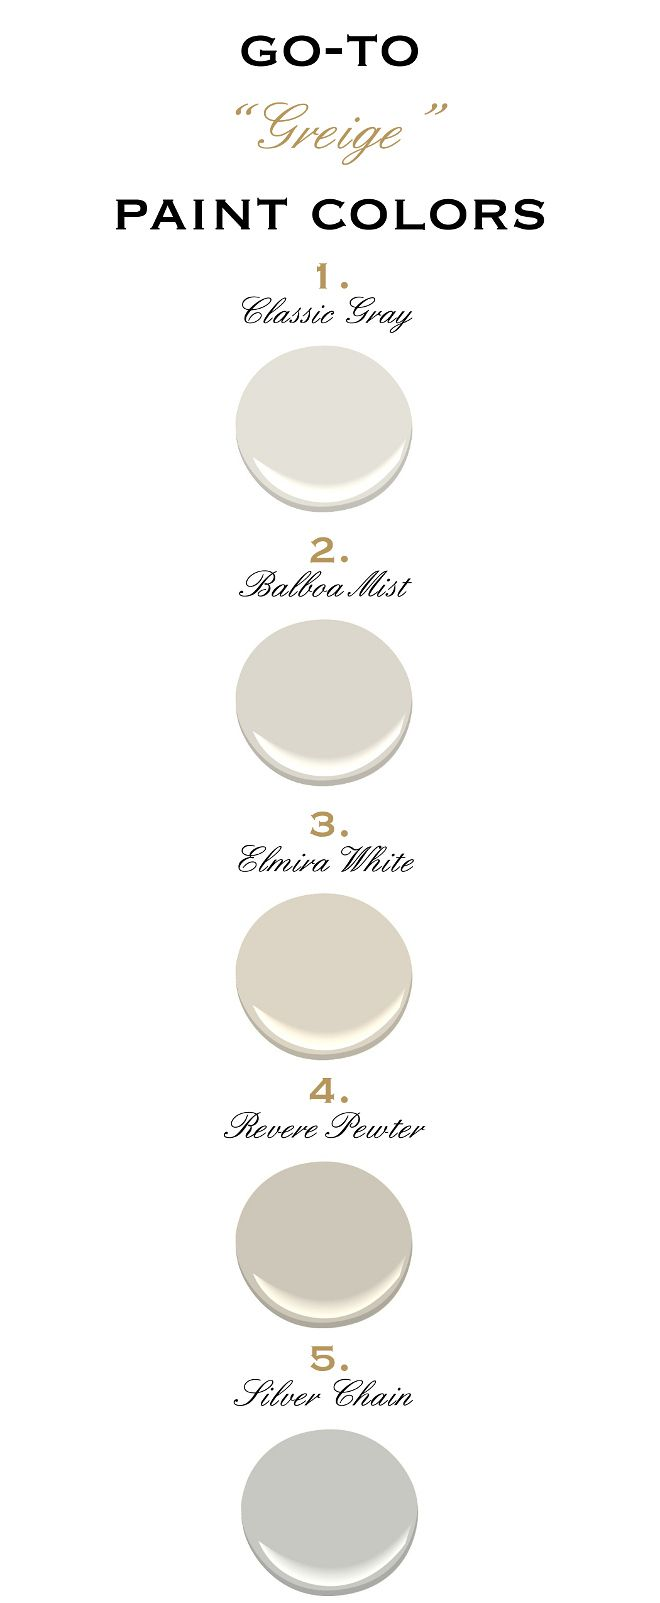 Top Greige Paint Colors By Benjamin Moore Clic Gray Balboa Mist Elmira White